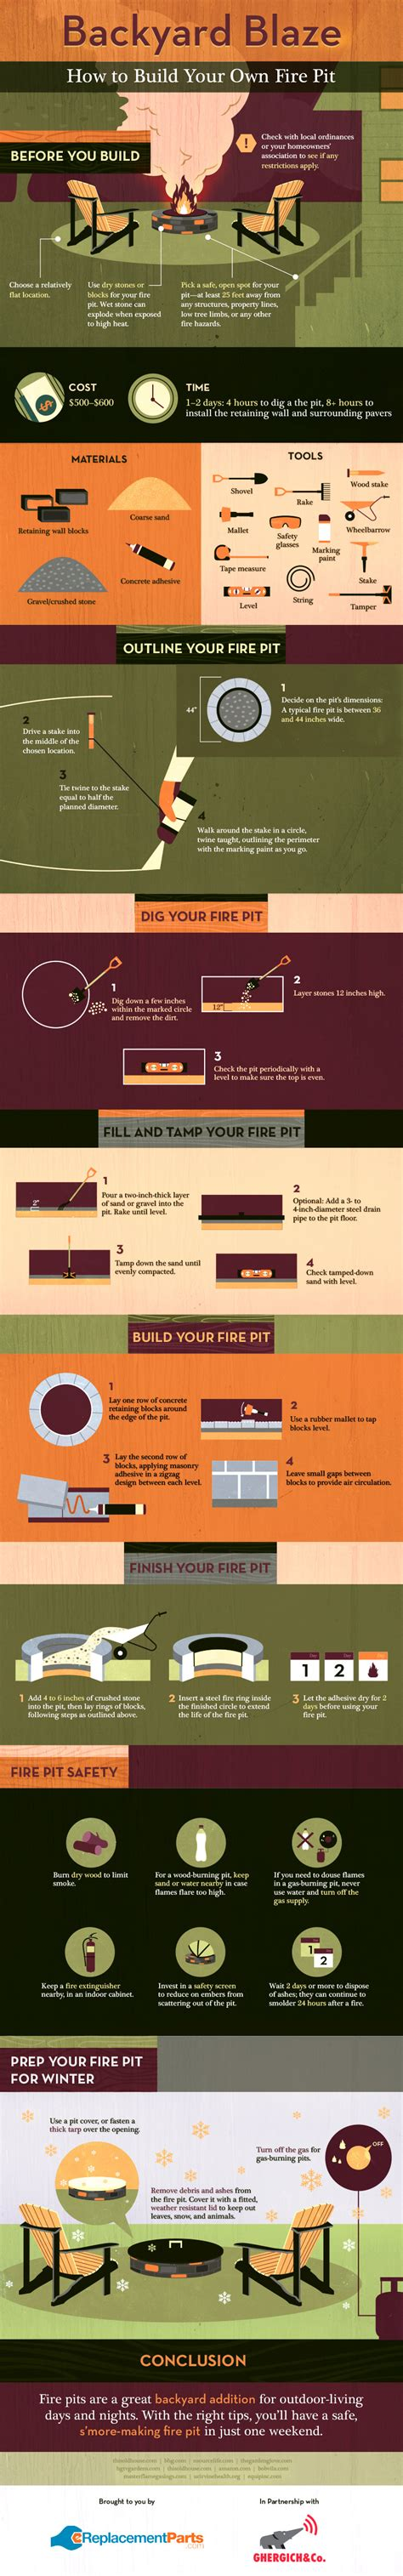 Step By Step Build Your Own Pit The Garden Hose How To Build A Pit Step By Step